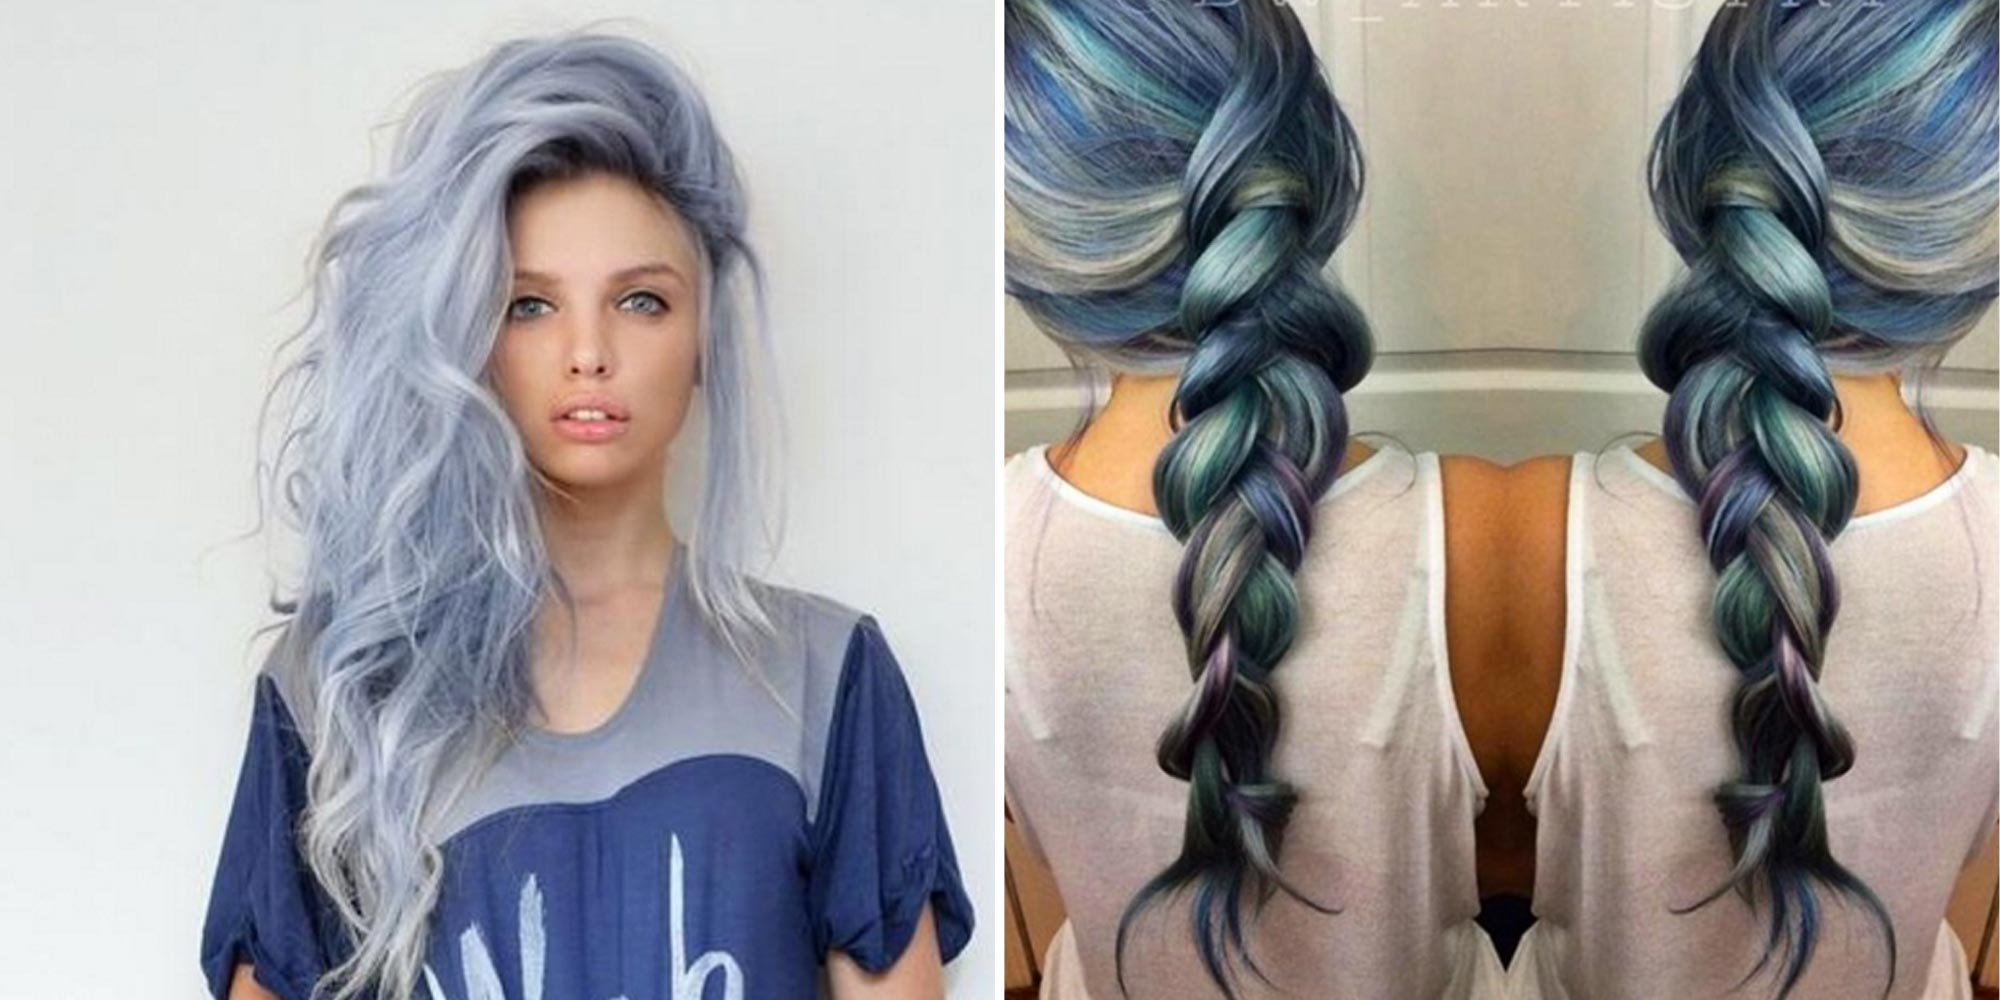 Denim Hair Is The Low-Key Cool Way To Make Your Hair Stand Out